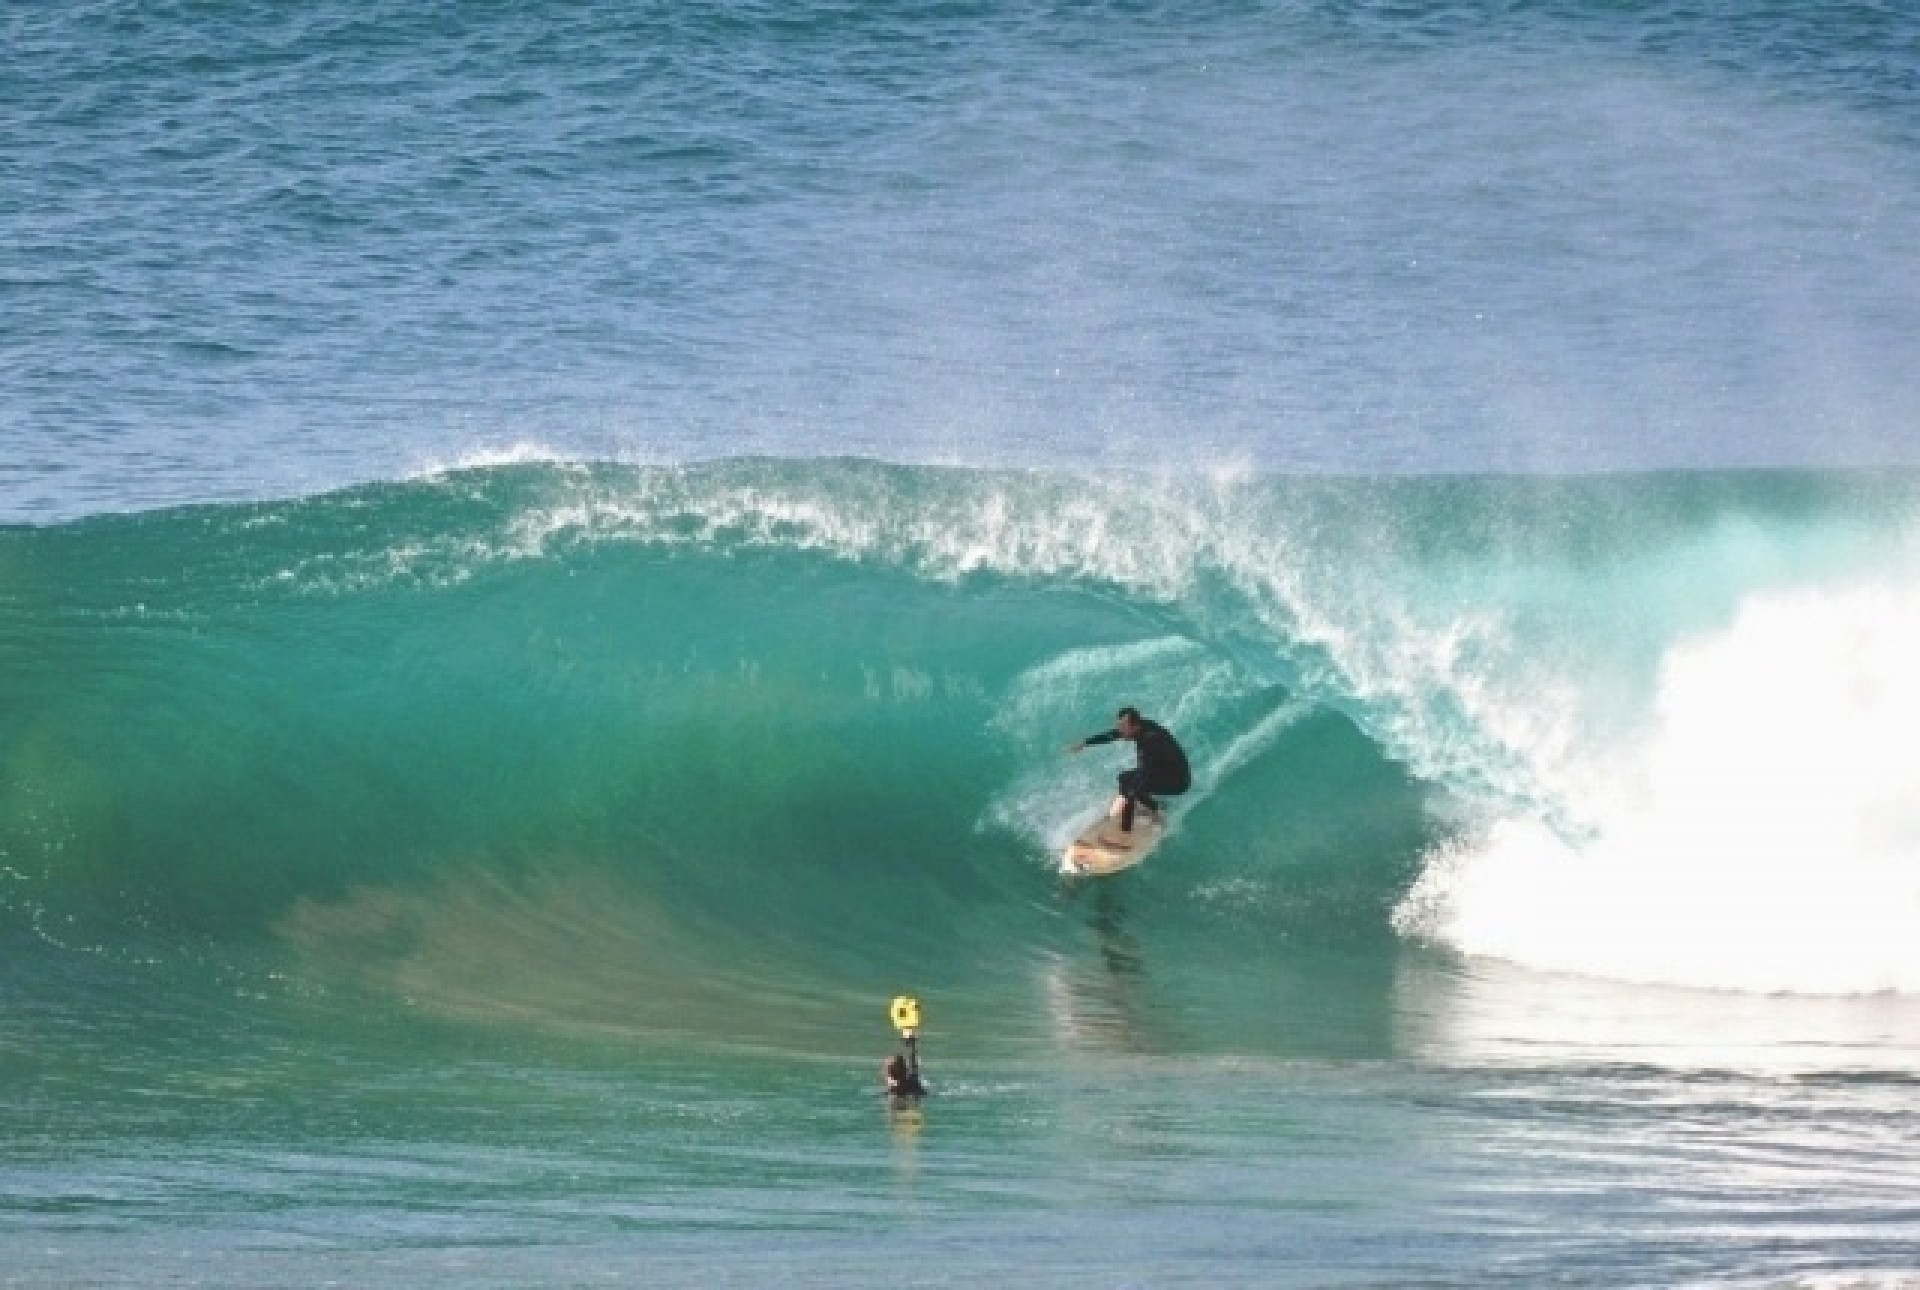 www.saharasurf.com's photo of Agadir